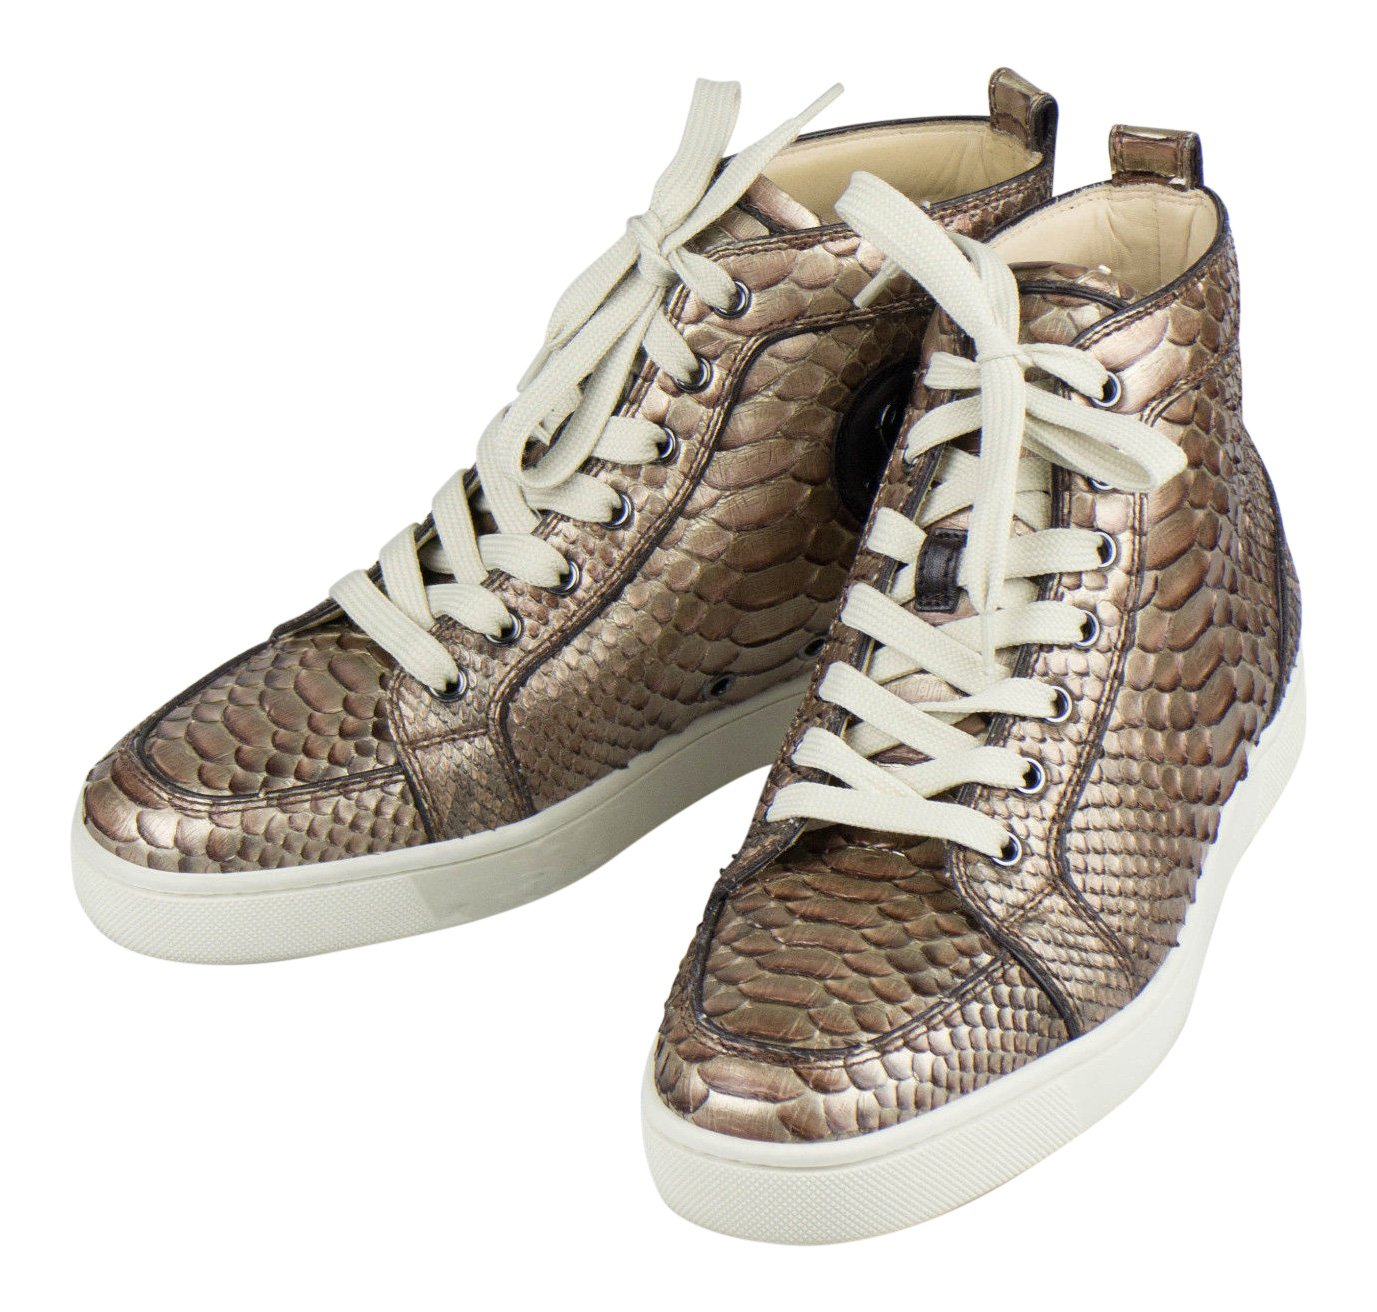 8dbc4e832da8 Christian Louboutin Brown Python Snake Skin Sneakers Shoes 6 39   Amazon.co.uk  Sports   Outdoors